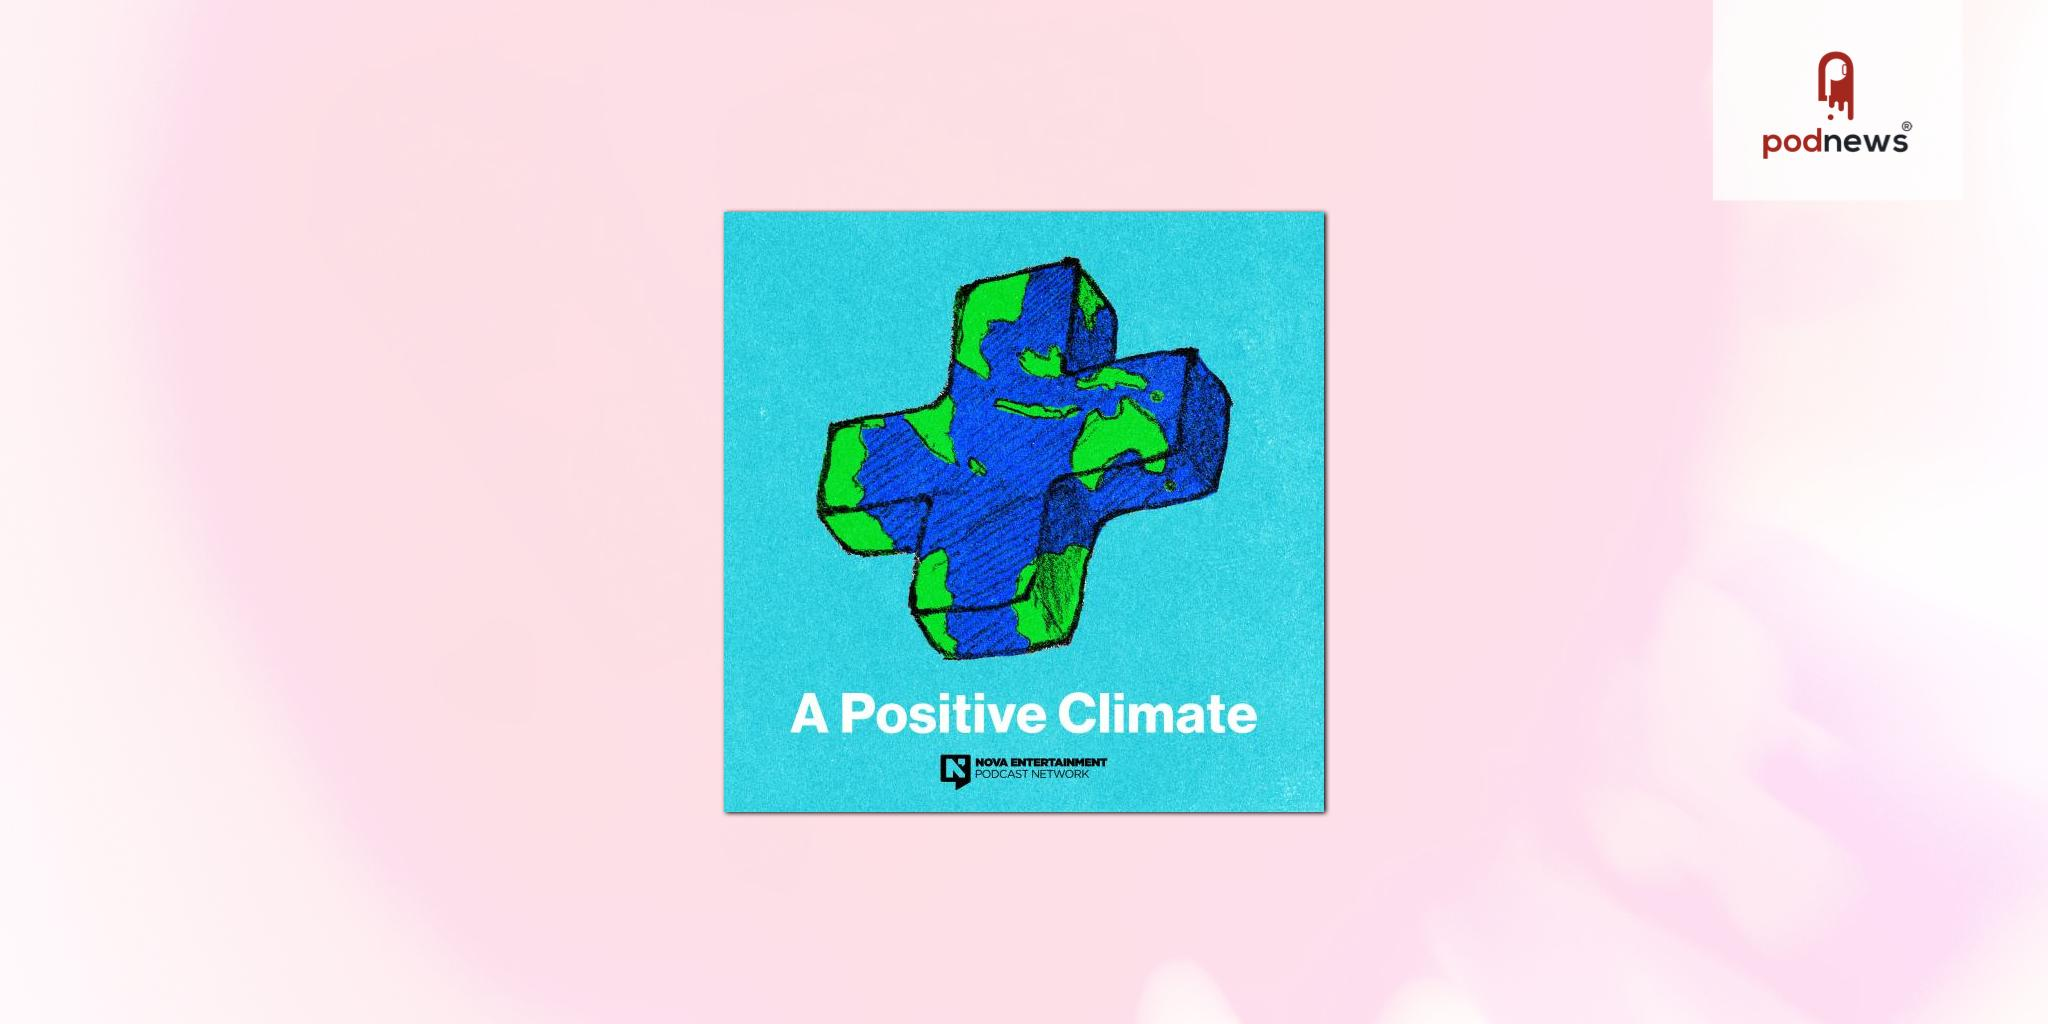 A Positive Climate podcast flips the script on climate change